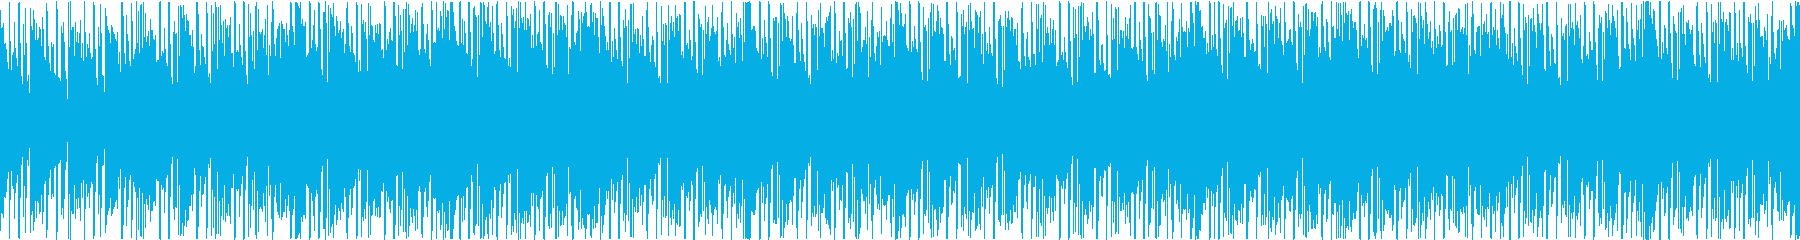 Comical-like weird instrument's reproduced waveform